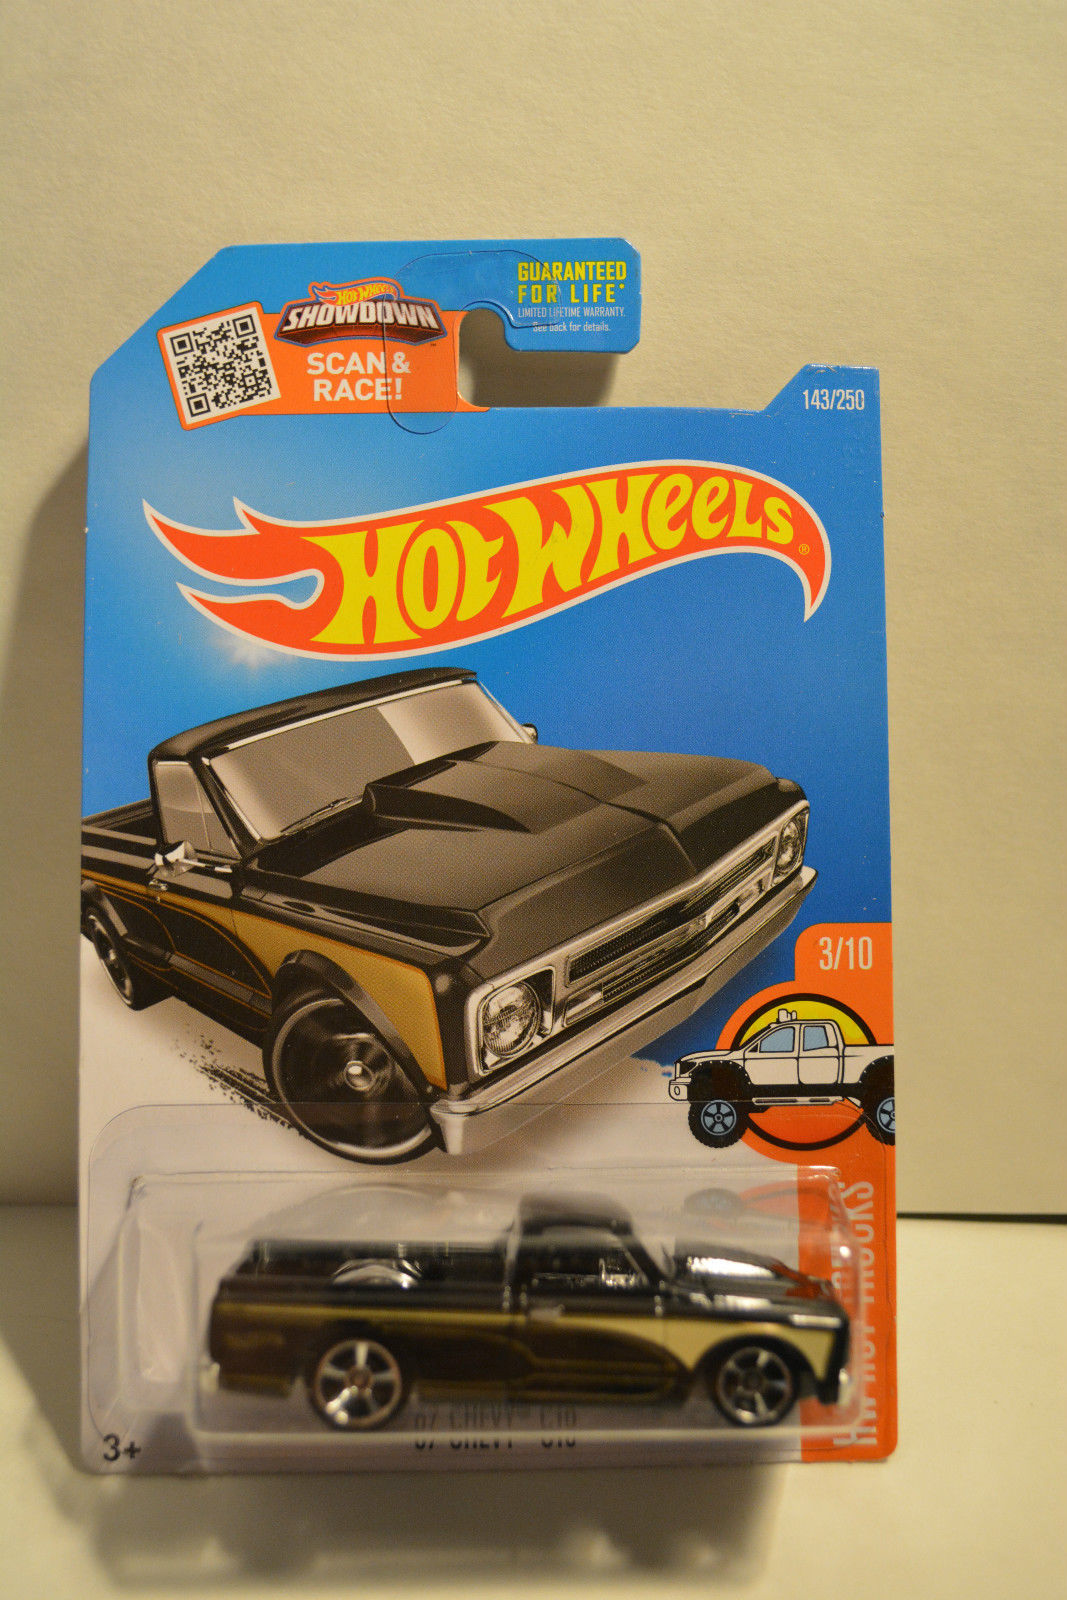 All Chevy chevy c10 wiki : Image - 2016 '67 Chevy C10.jpeg | Hot Wheels Wiki | FANDOM powered ...